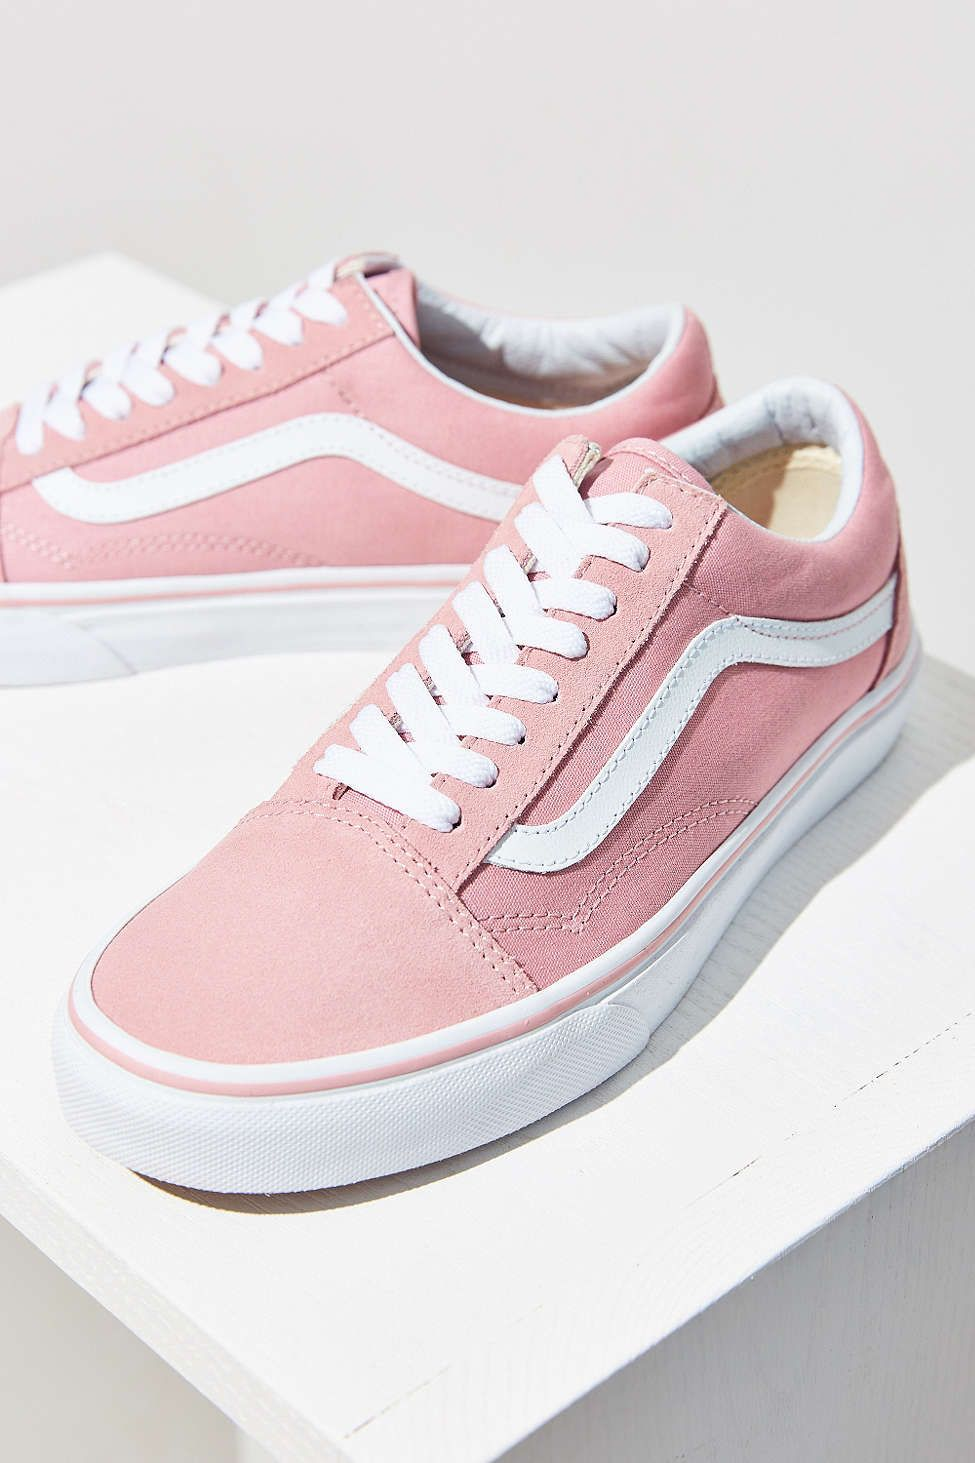 Vans Pink Old Skool Sneaker | Shoes | Zapatos, Zapatos vans, Zapatos ...